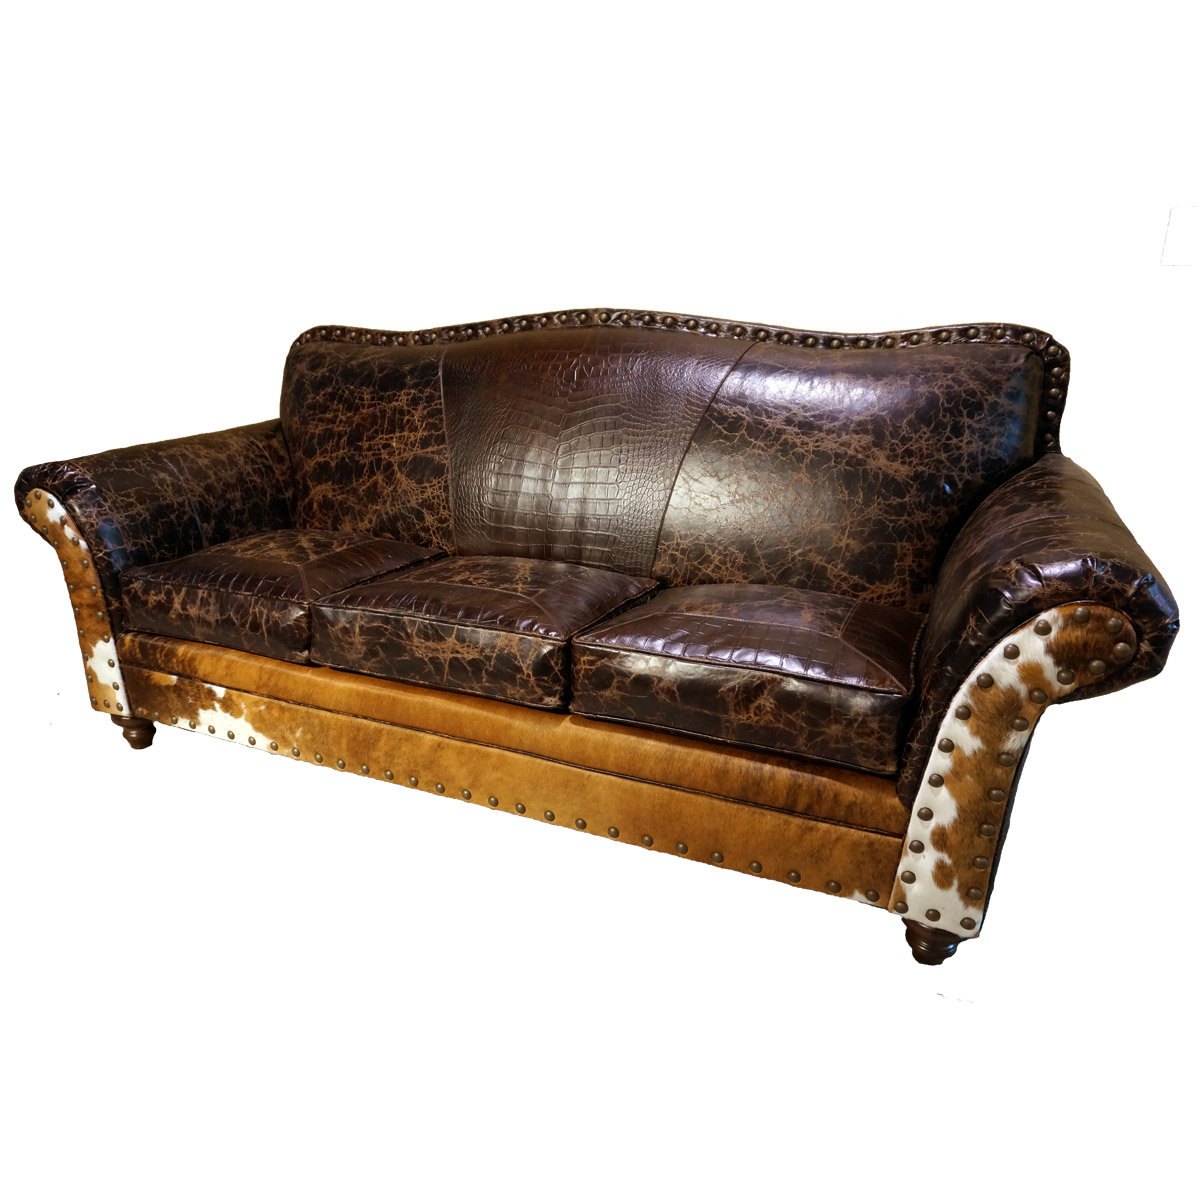 Black Forest Decor Cabin fever sofa